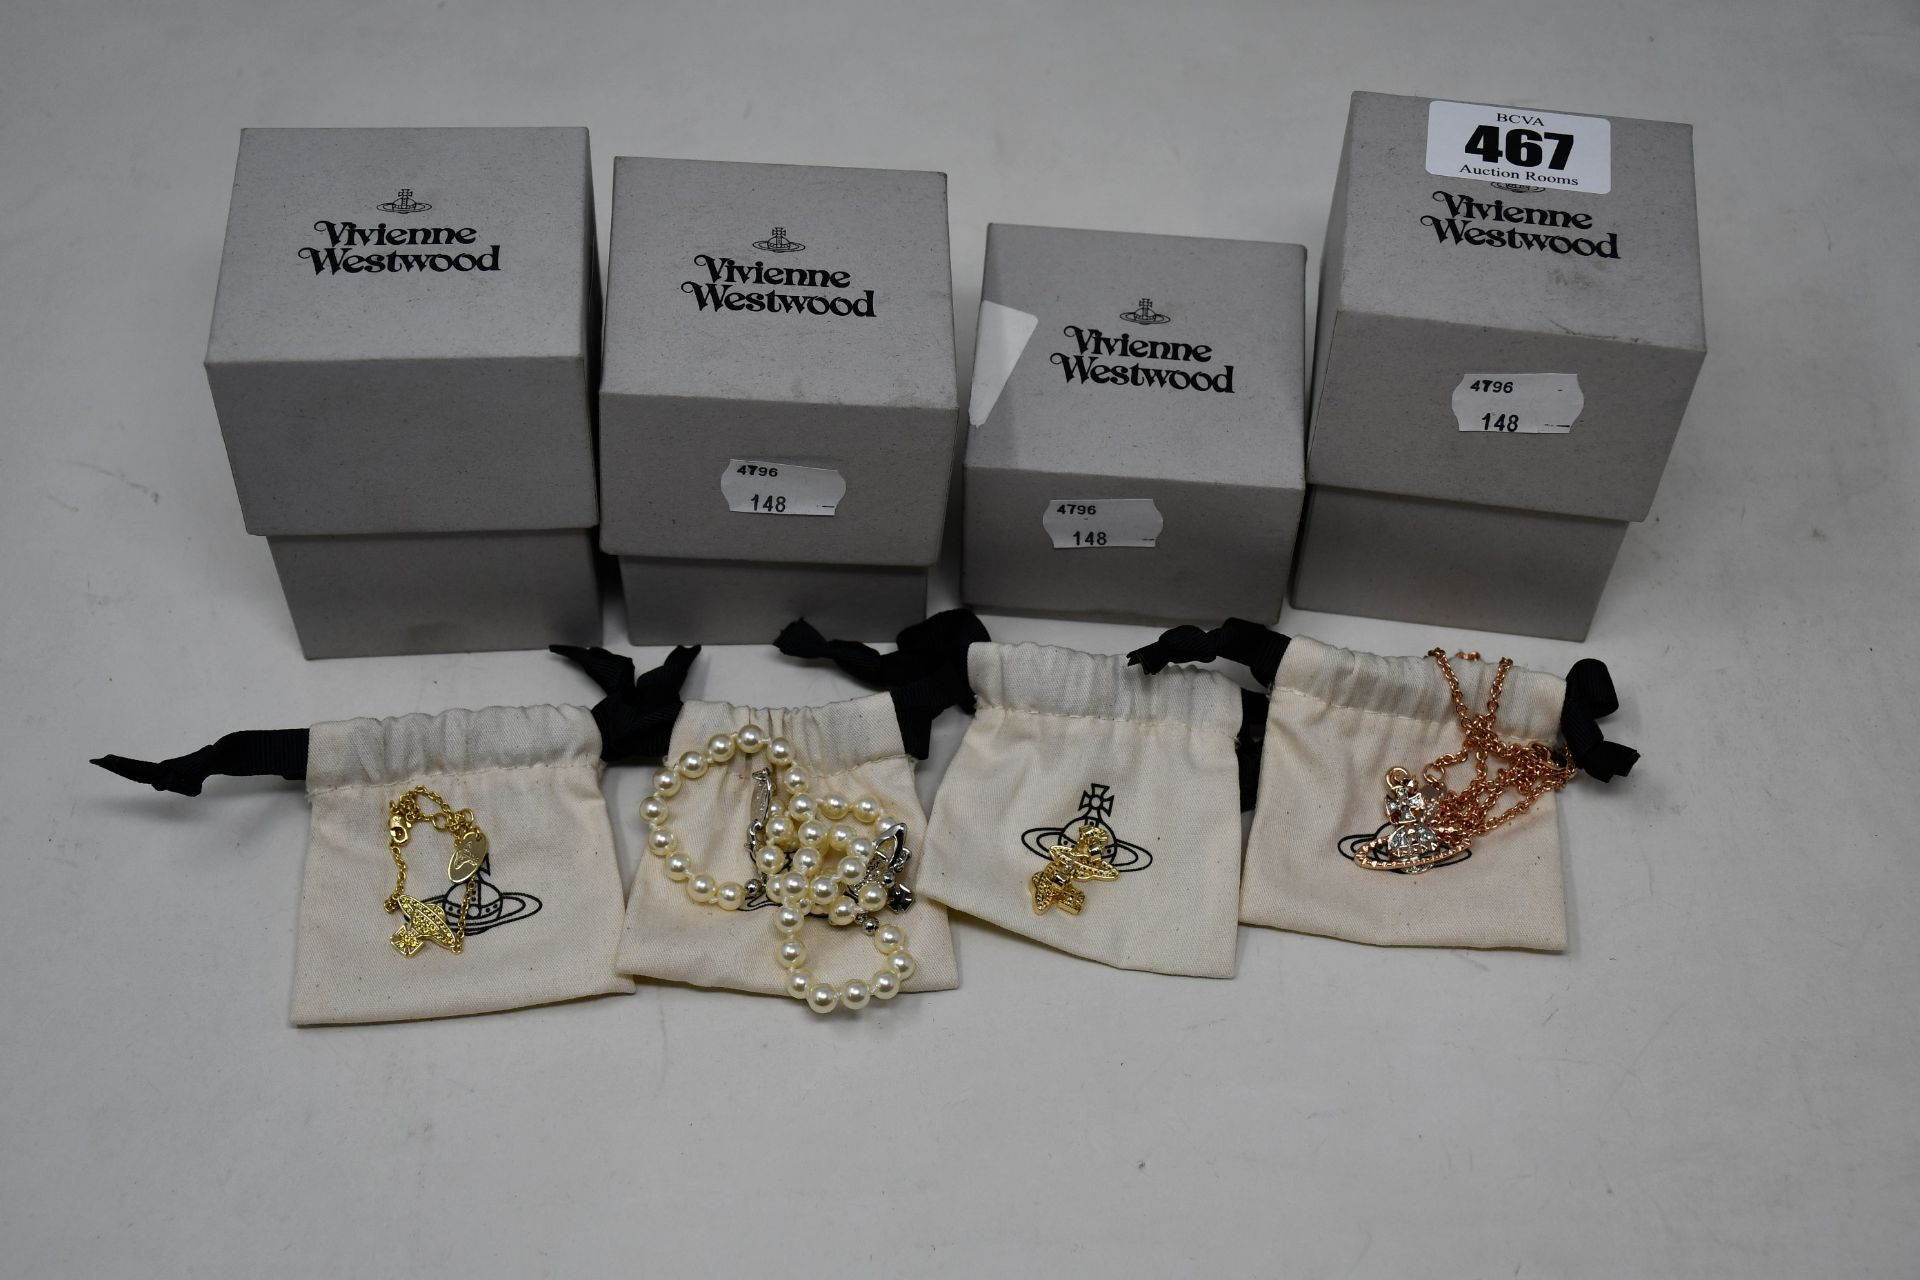 Four item of as new Vivienne Westwood jewellery to include studs, necklace and bracelet.